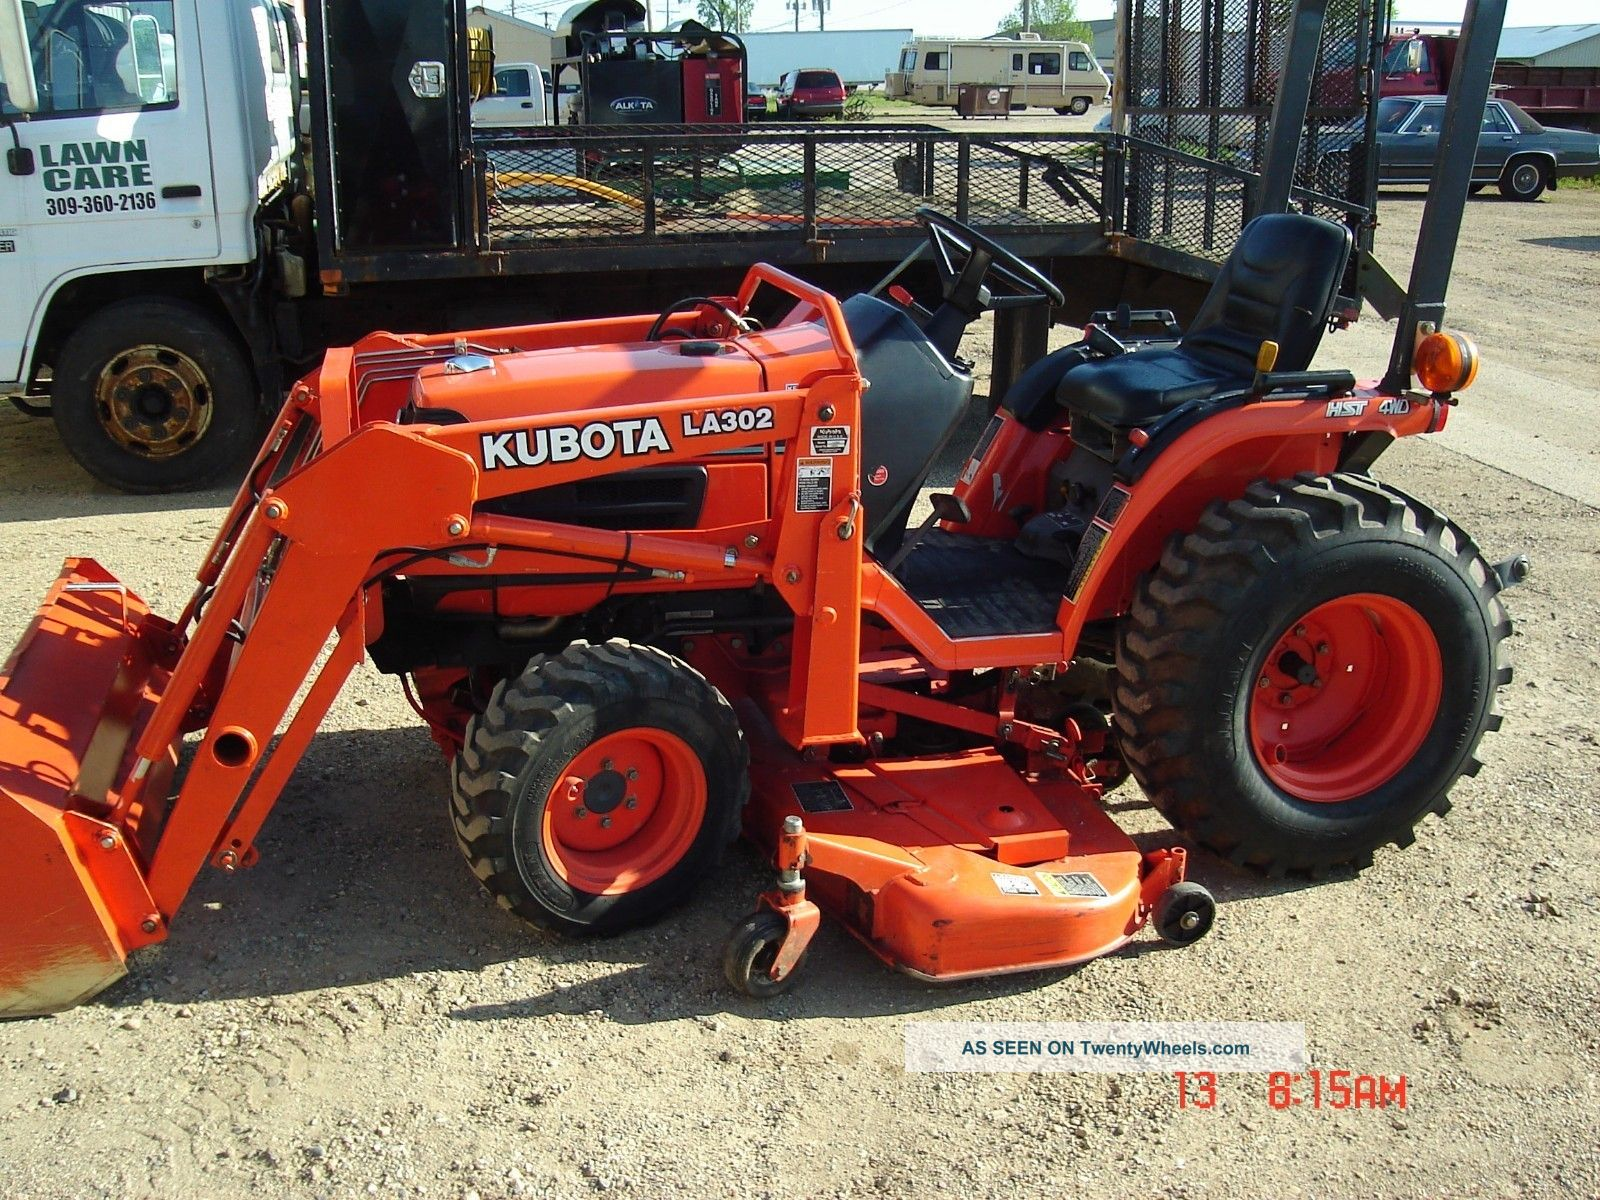 Hydrostatic Transmission Tractor : Kubota b hsd wd hydrostatic transmission diesel with